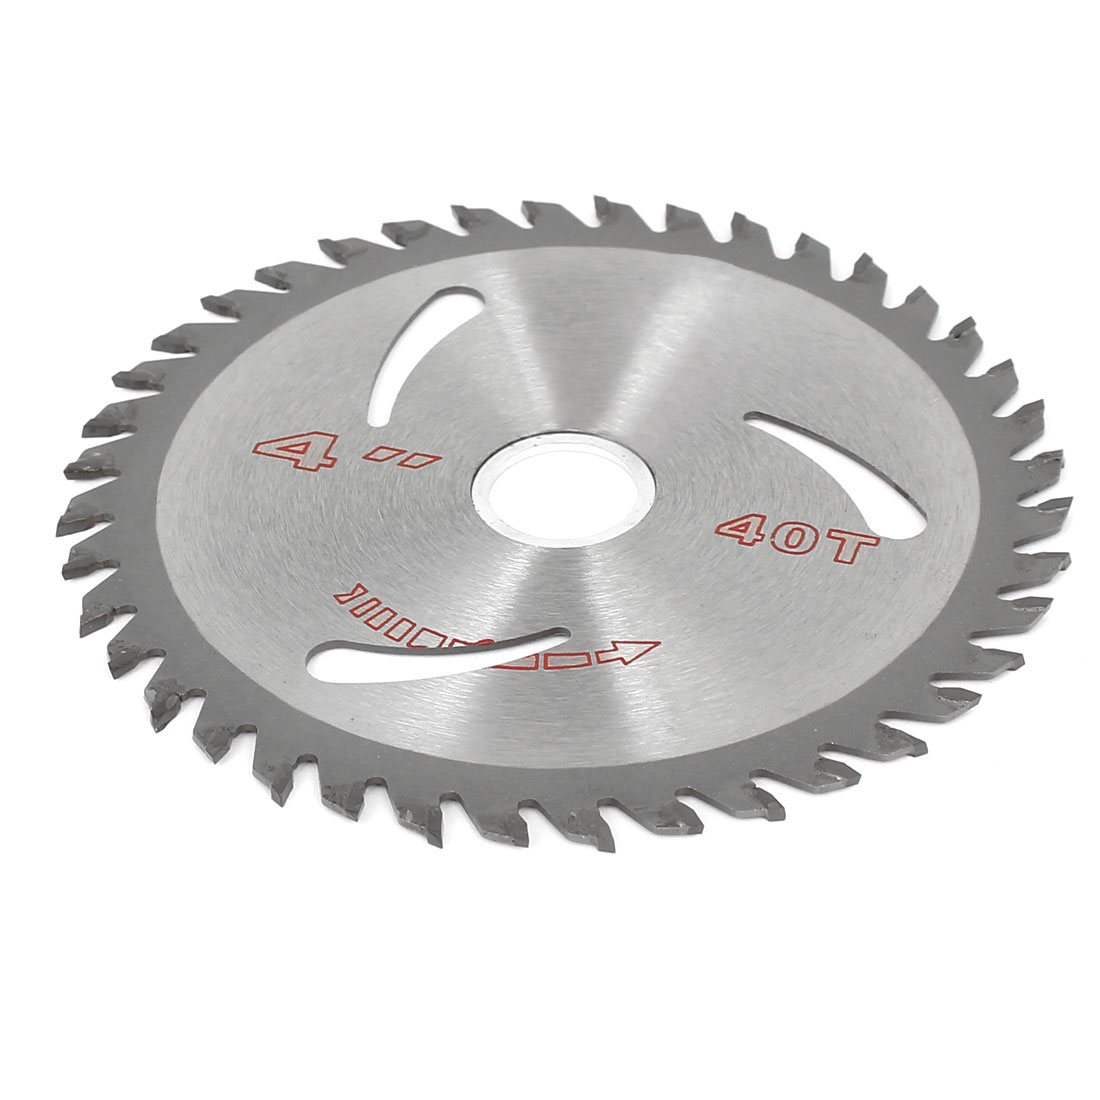 40T 1.5mm Thick Slitting Saw Cutter 110mm Silver Tone for Wood Plastic Metal